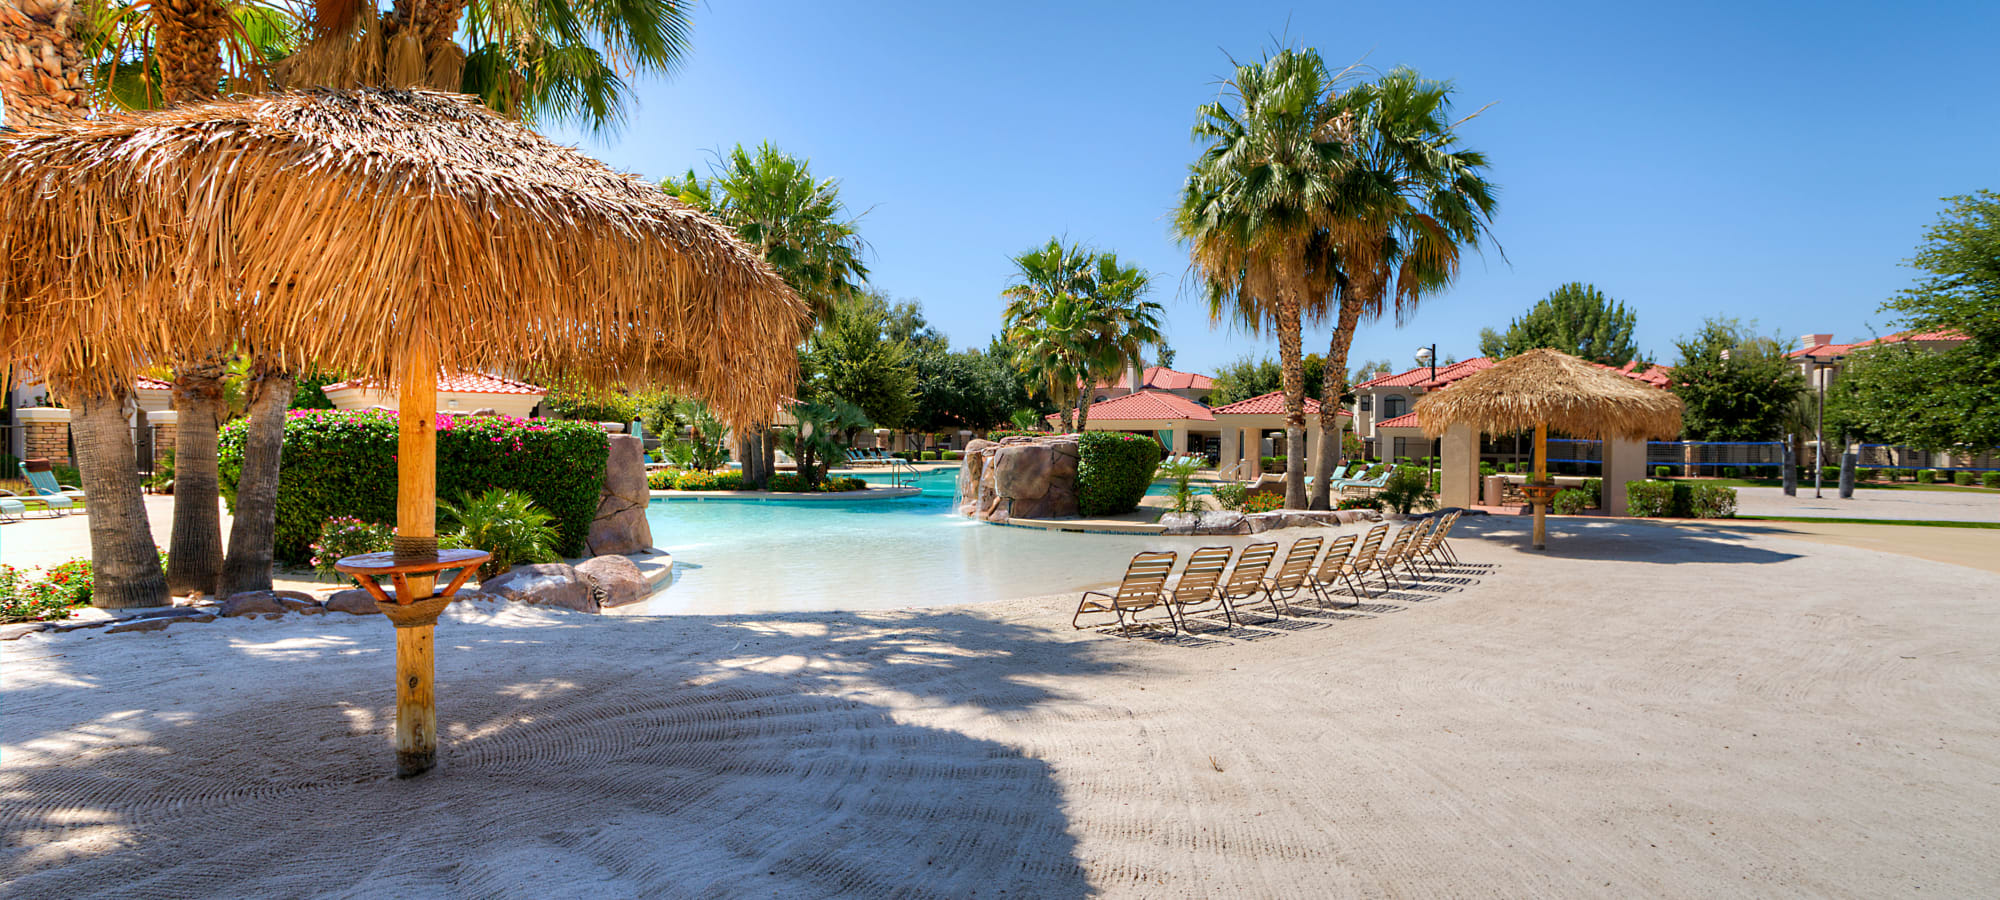 Beach-style swimming pool at San Cervantes in Chandler, Arizona